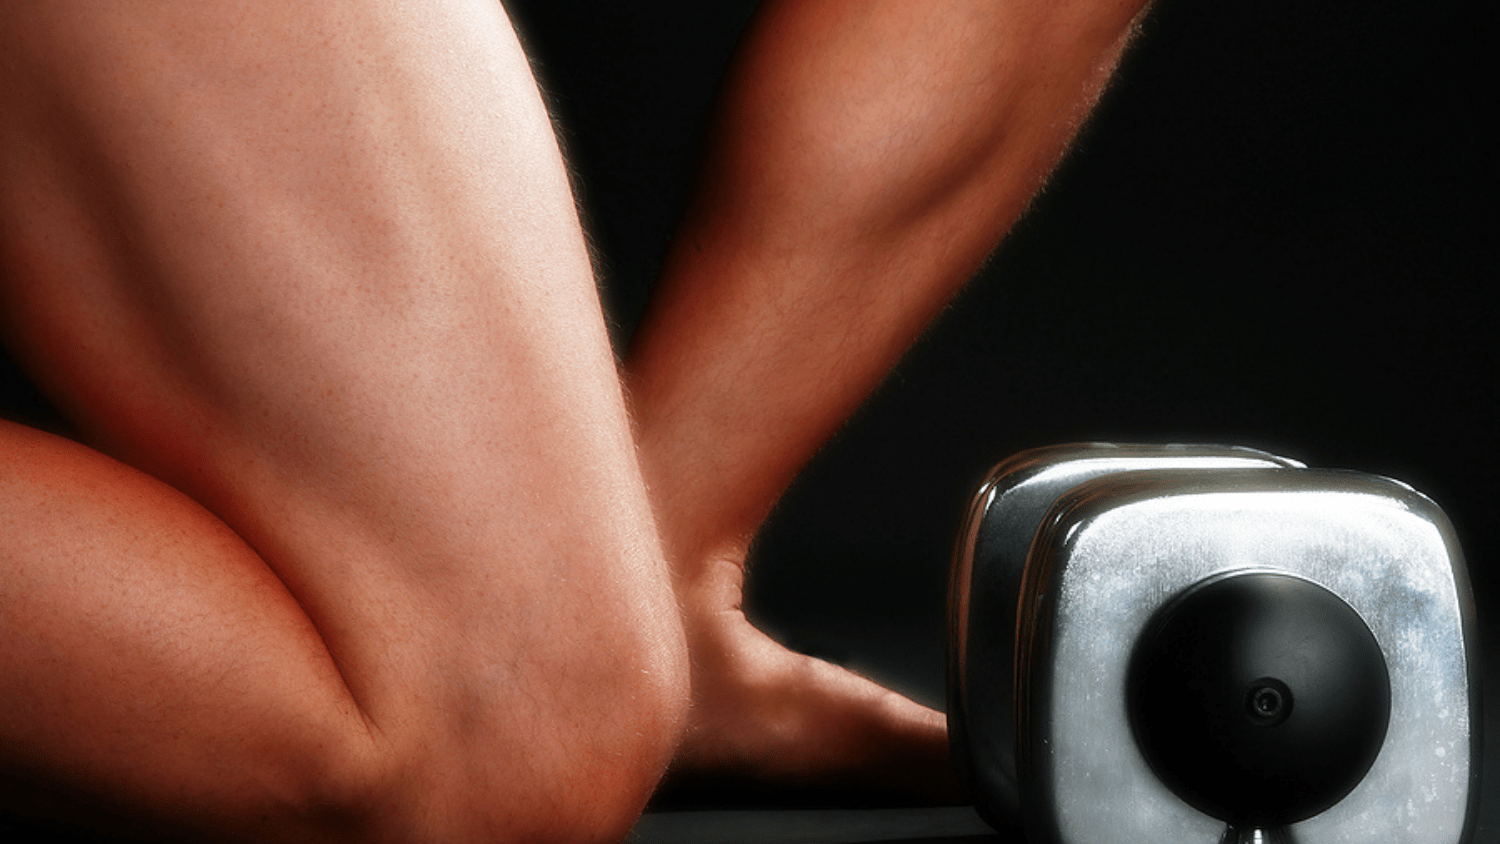 The Best Workout To Develop The Quadricep Muscles